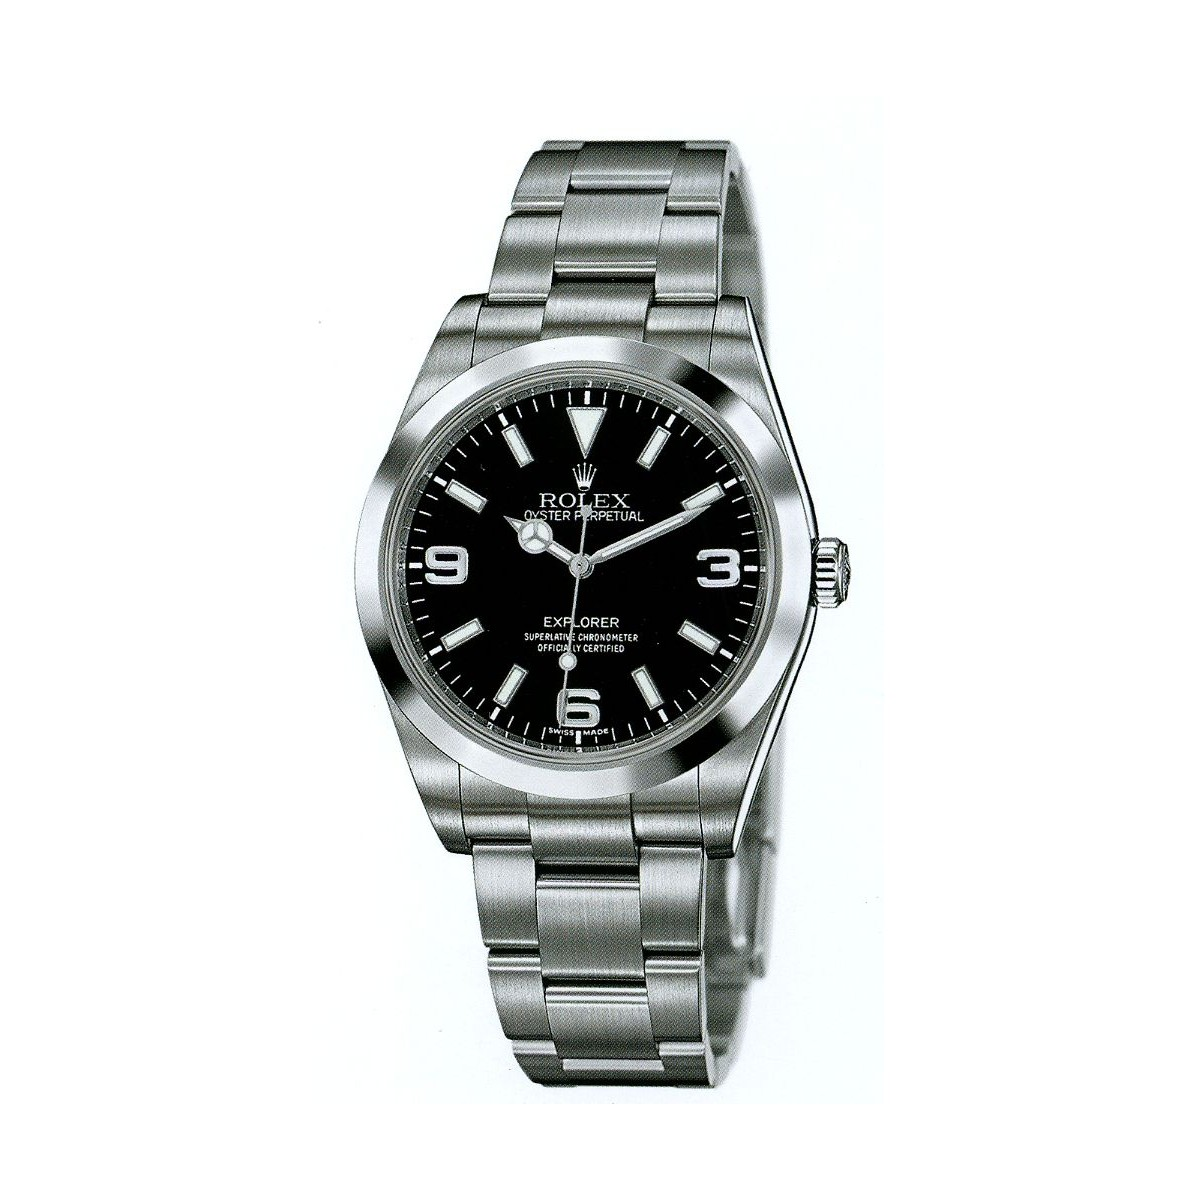 icw watches gentlemans en staimless rectangular a vintage steel watch sold bj iwc